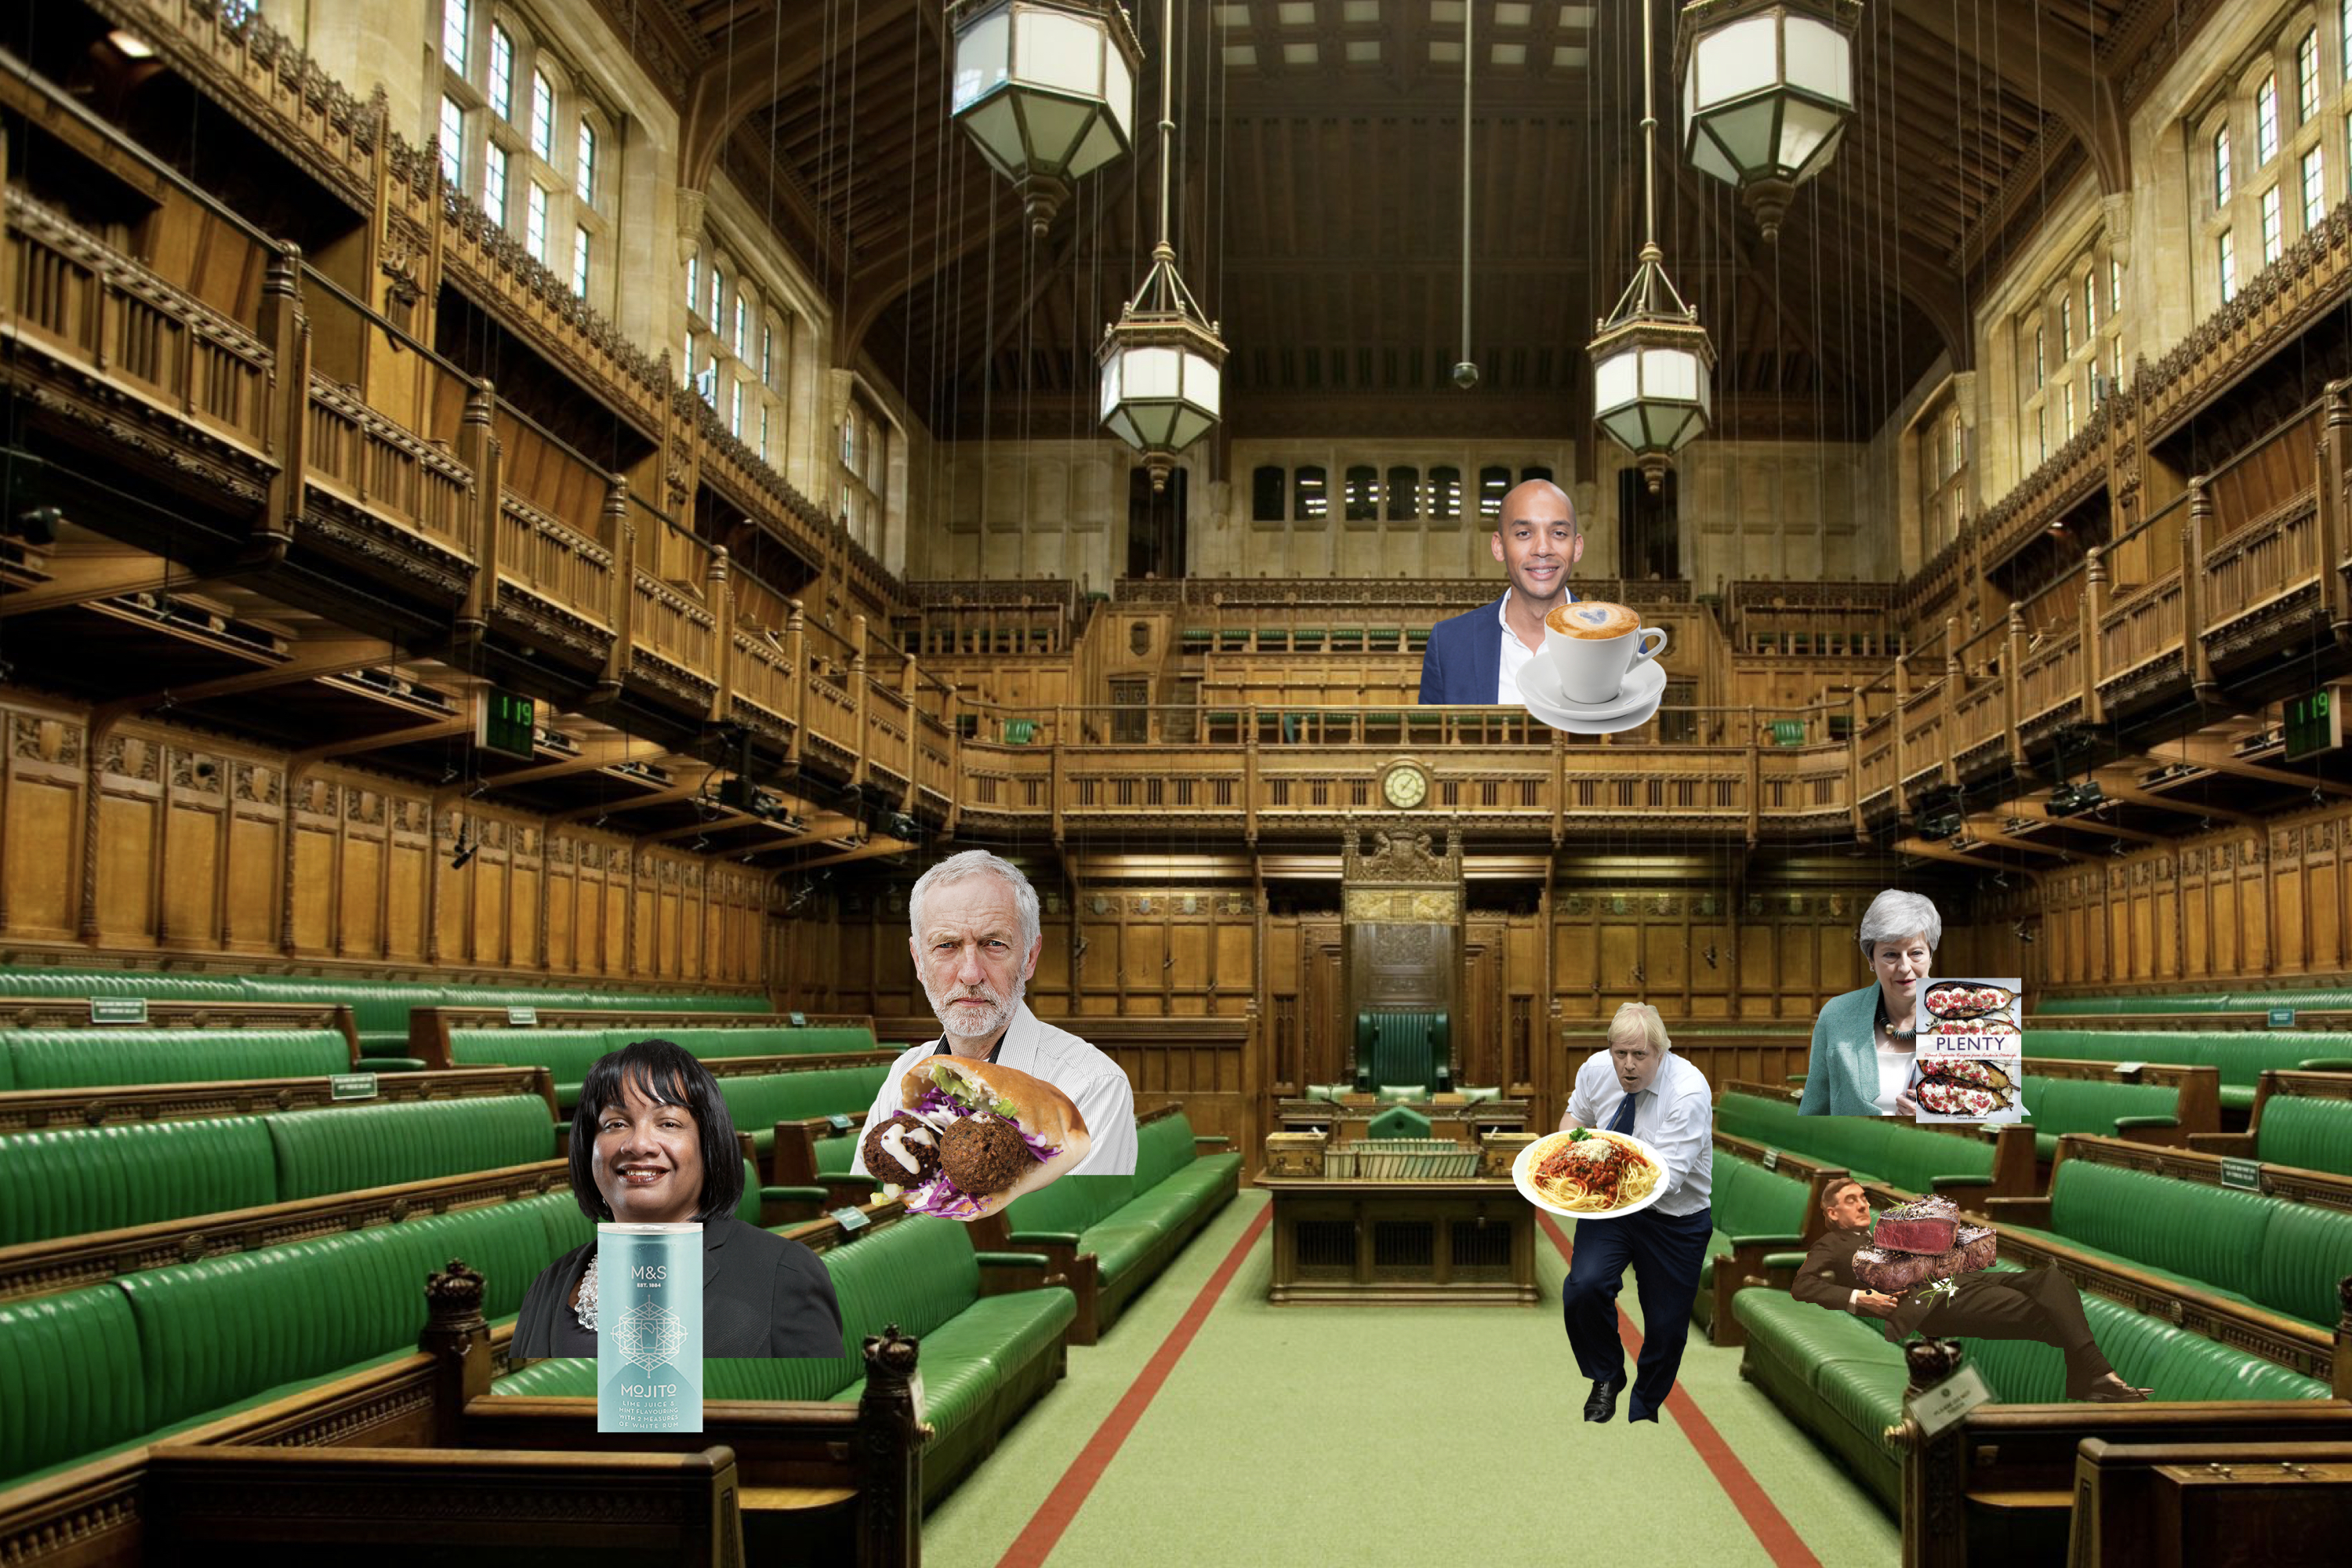 The House of Commons according to where politicians eat